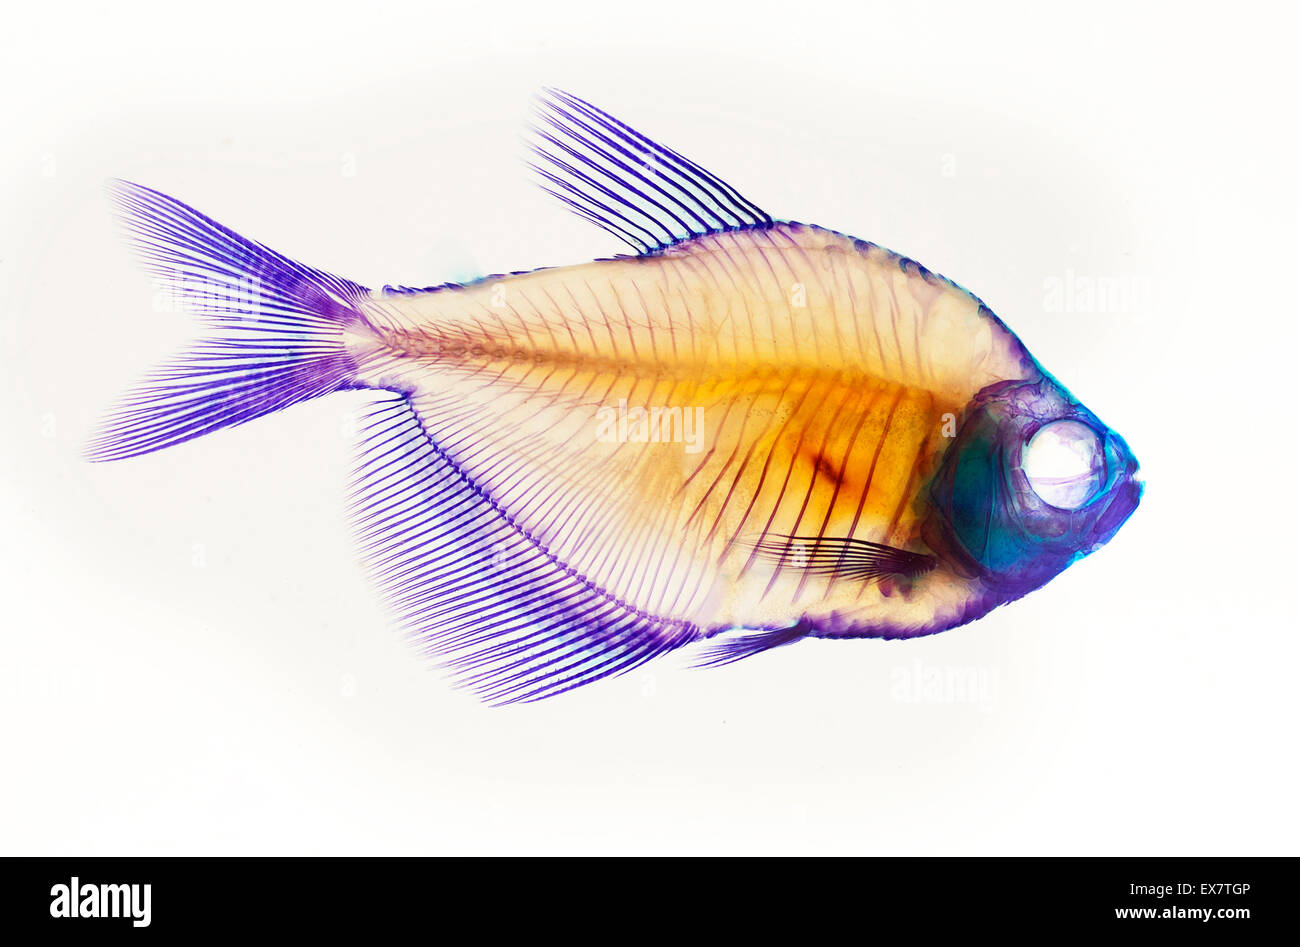 fish skeleton anatomy Stock Photo: 84995478 - Alamy